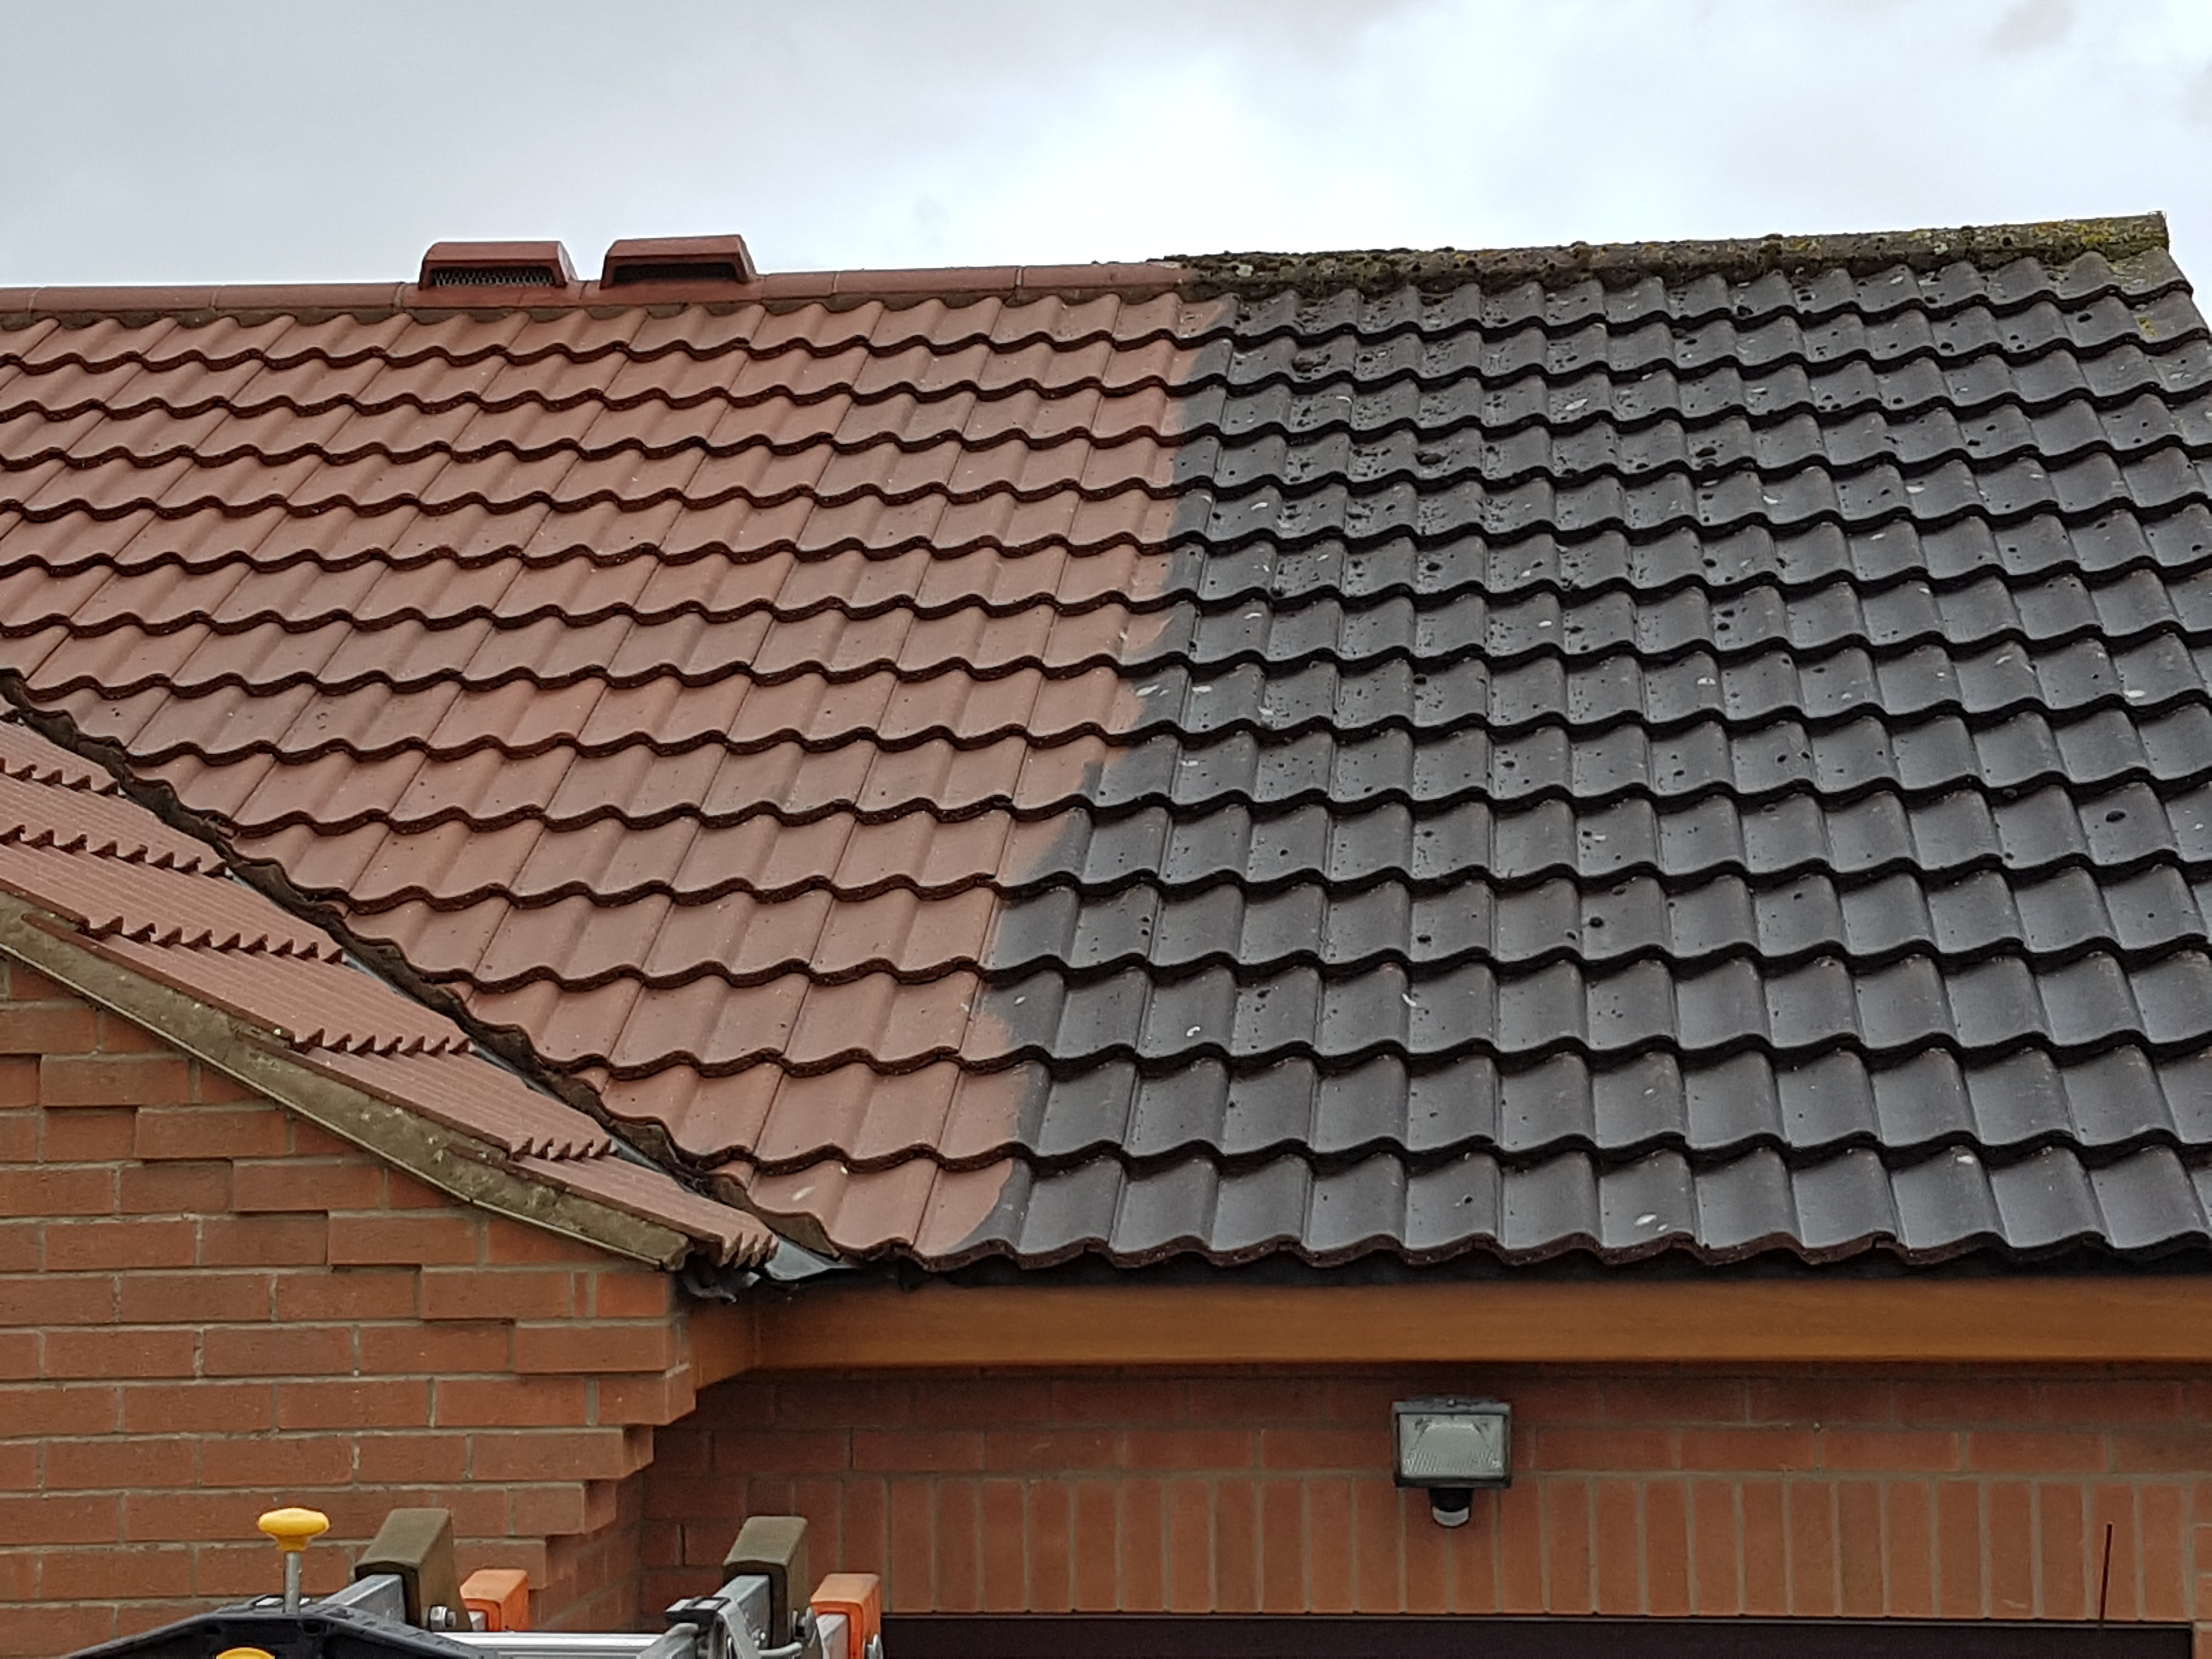 faded roof tiles